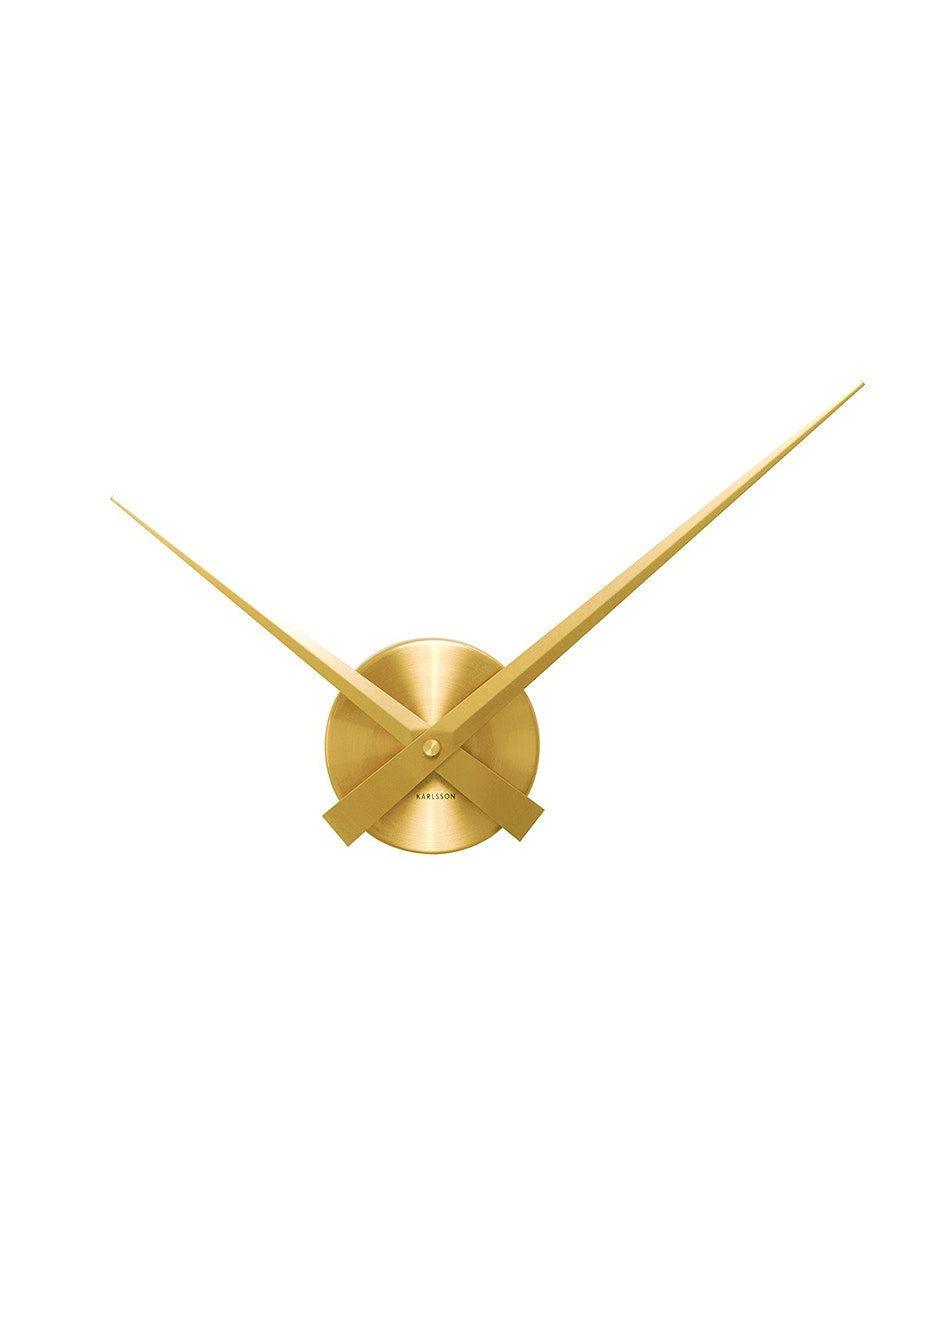 Karlsson - Wall Clock 'Little Big Time' Mini - Gold